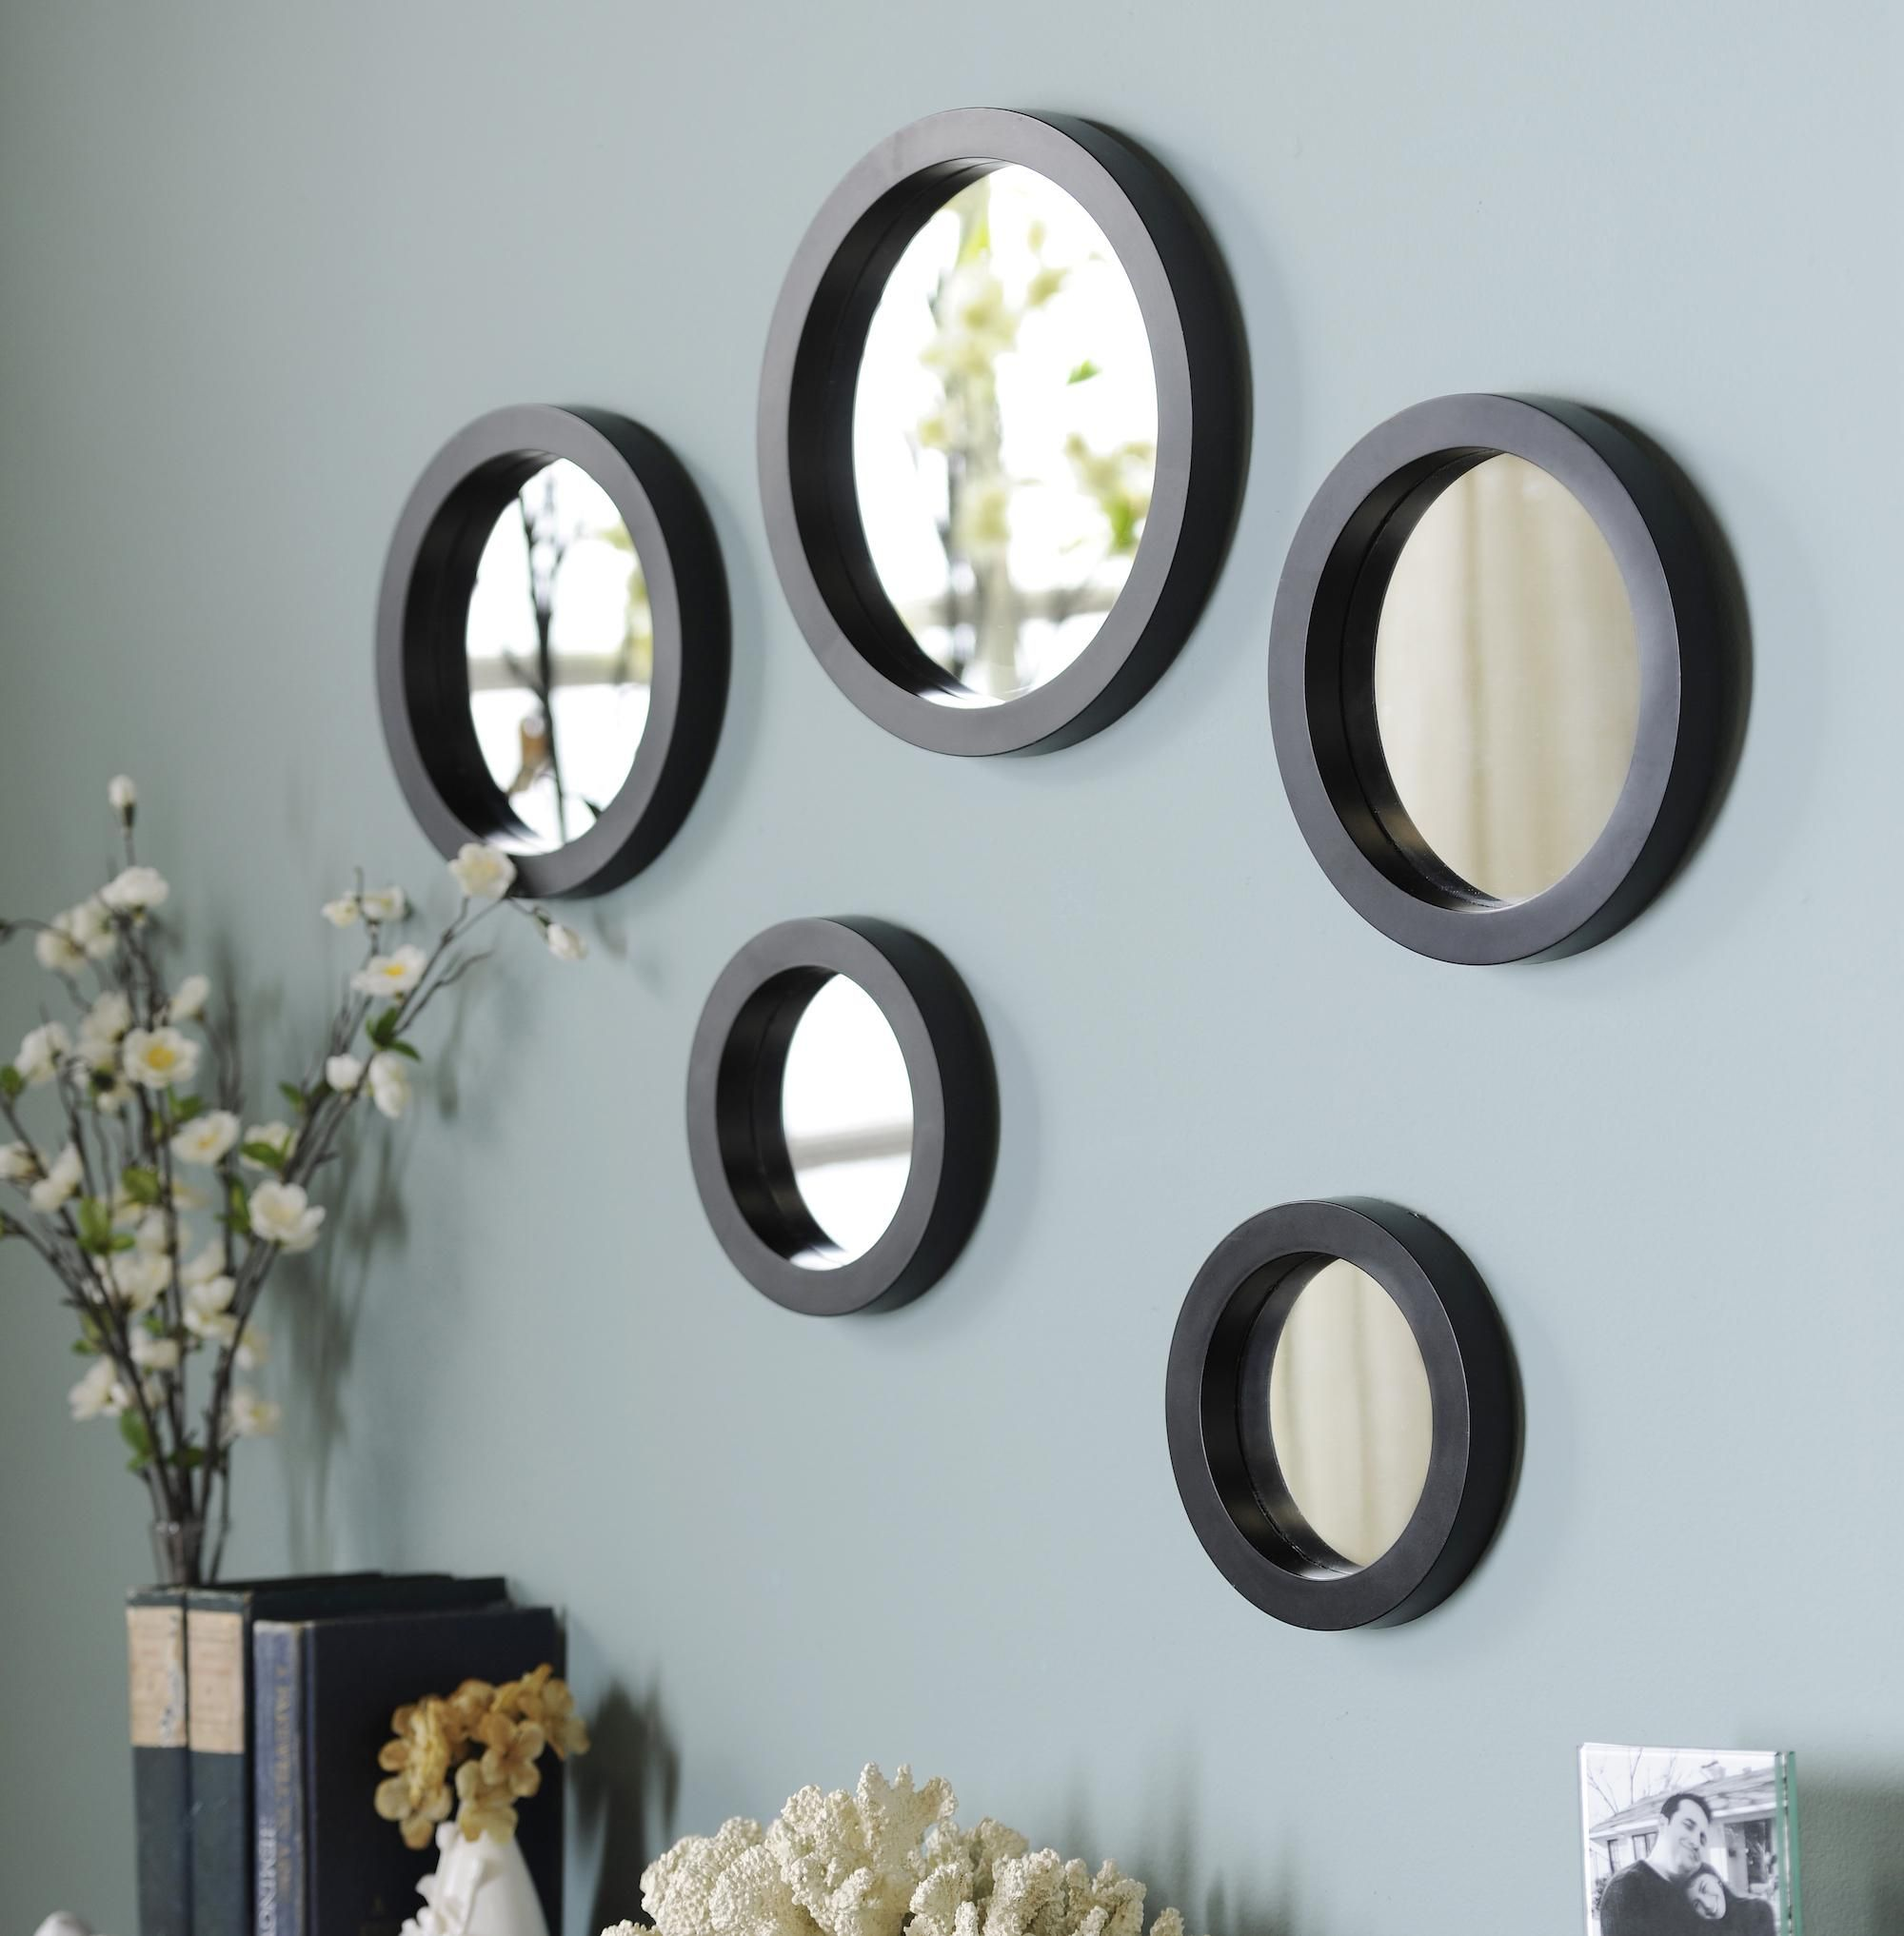 Mirror Sets Wall Decor this five piece set of circle mirrors is only $14.98, compared to